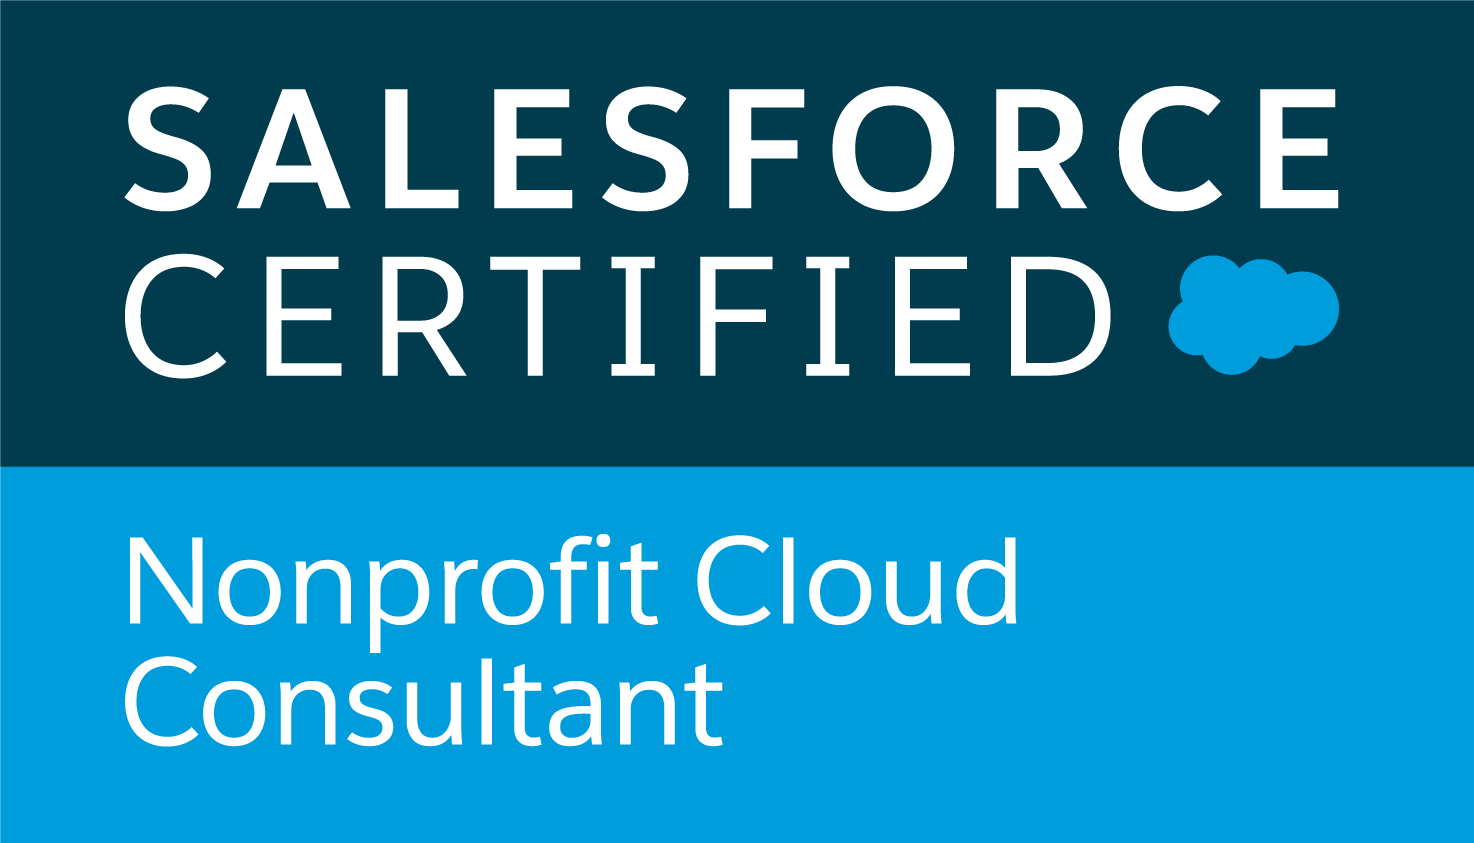 Salesforce Nonprofit Cloud Consultant